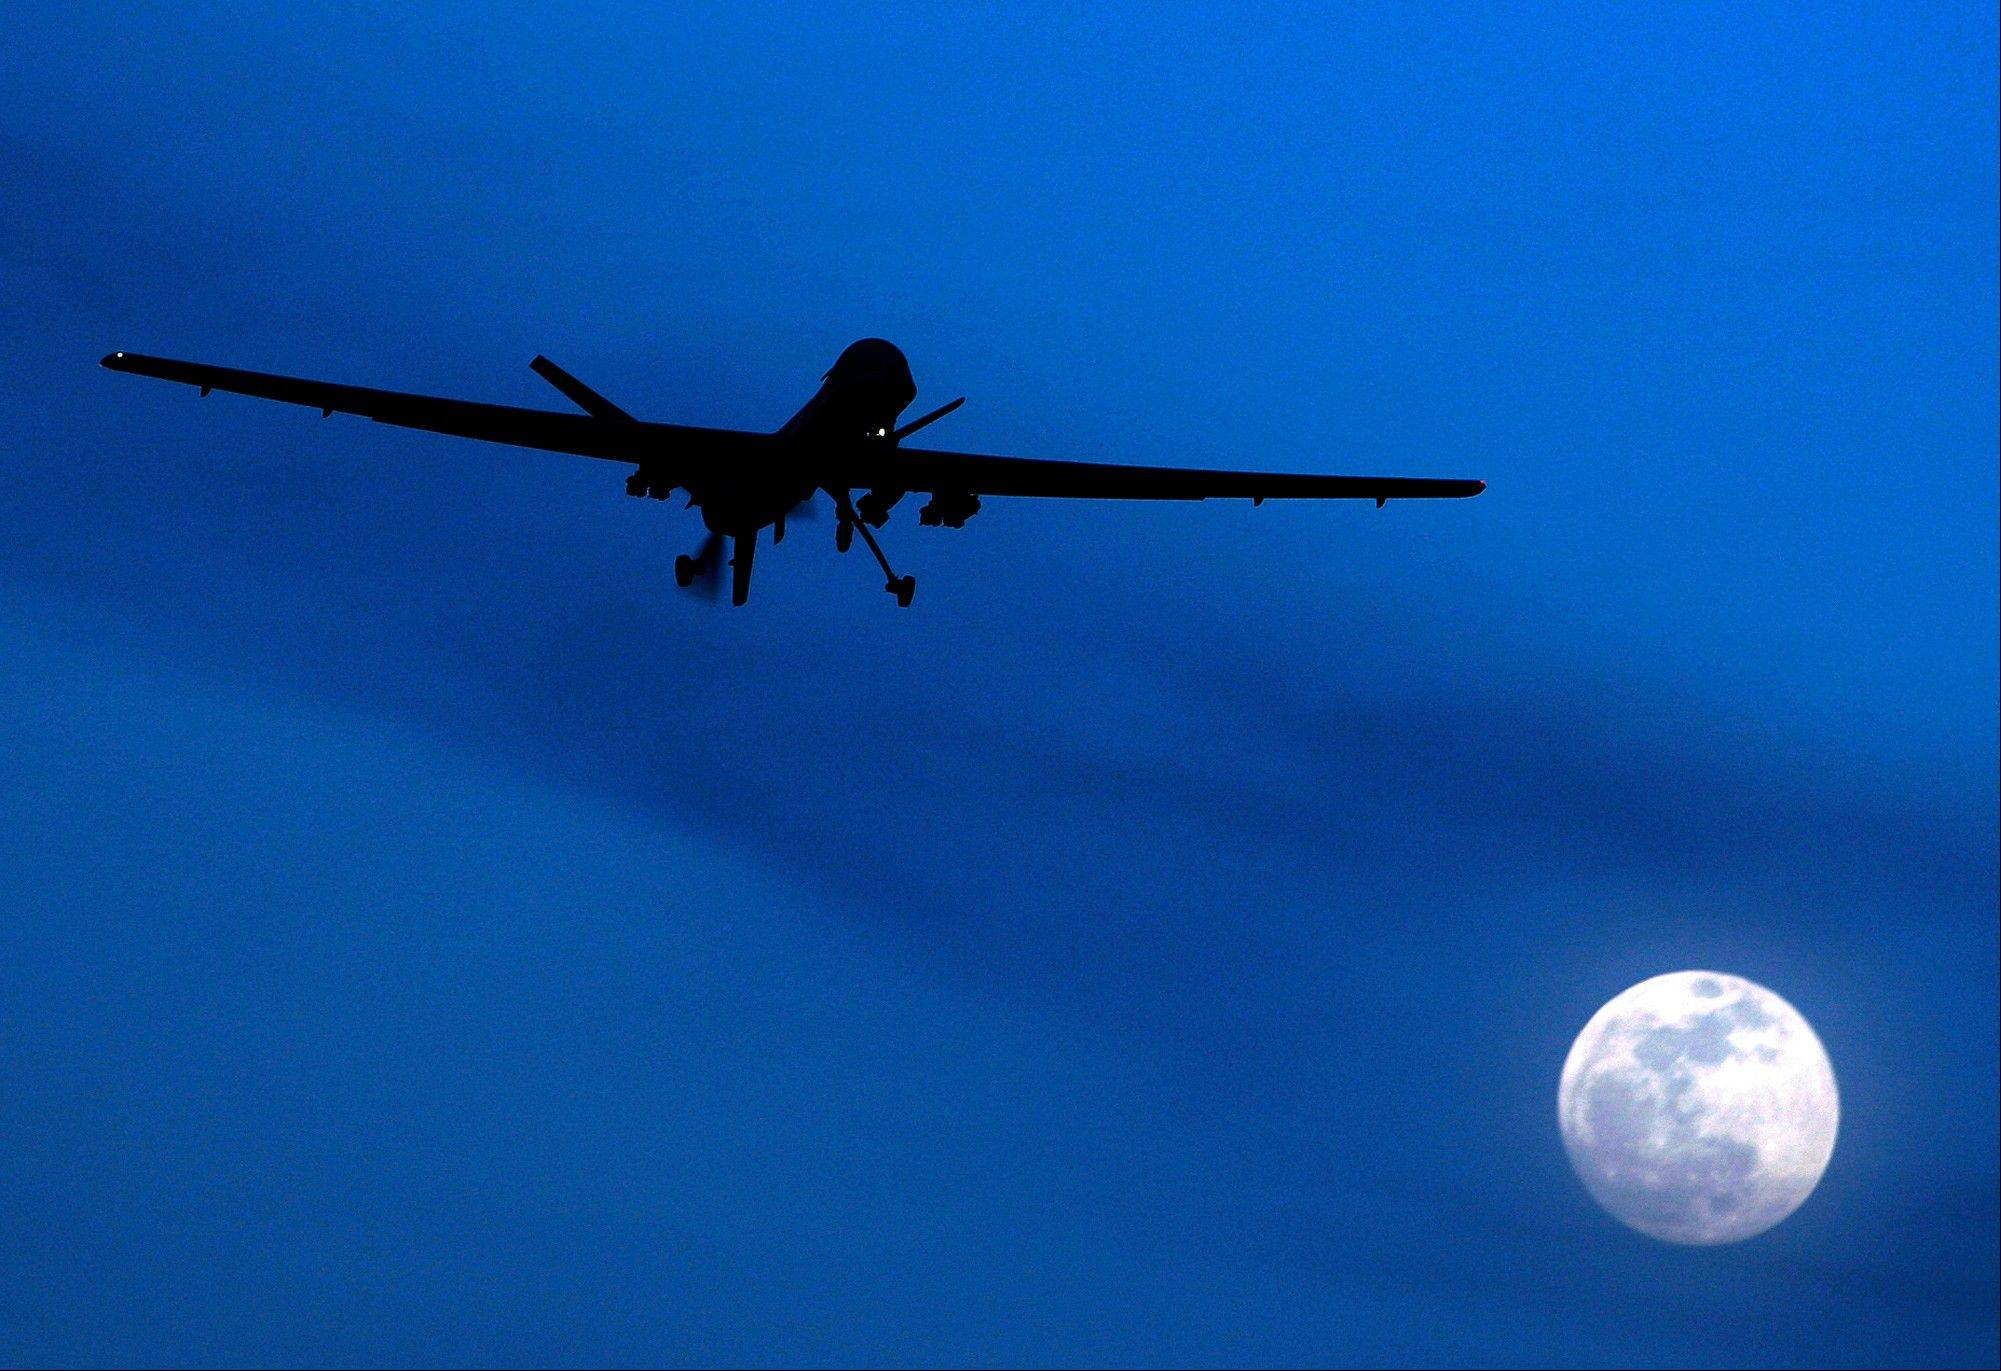 What's a drone? How is US drone policy changing?